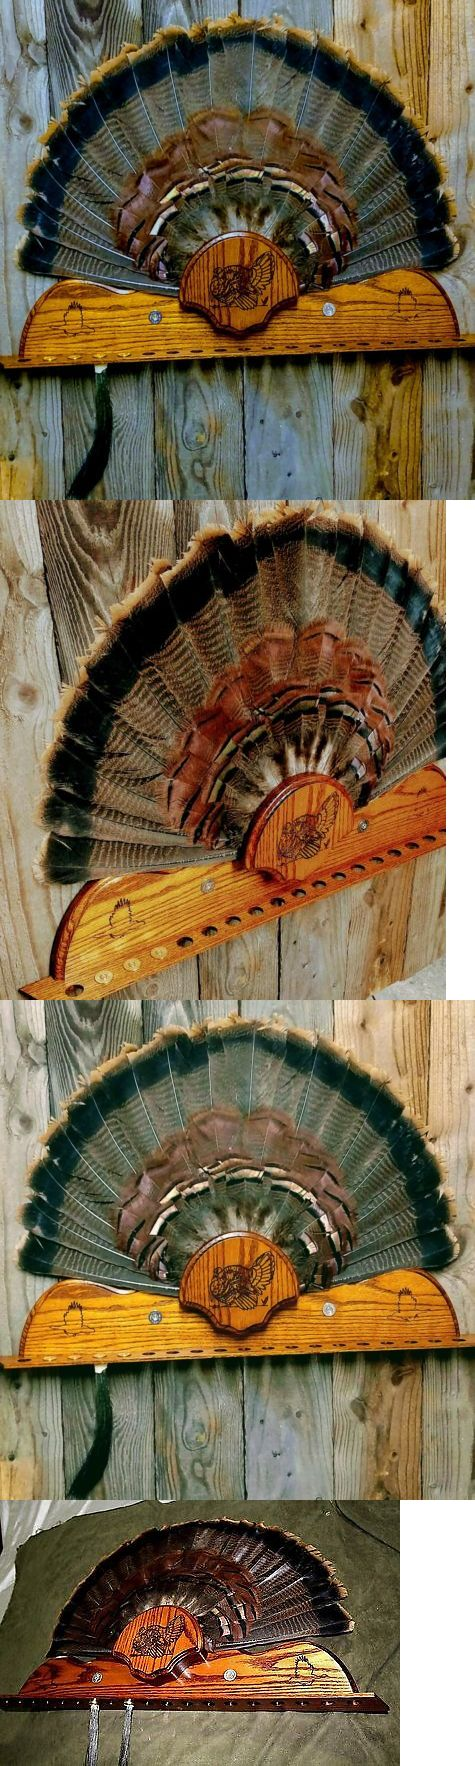 Taxidermy Supplies 71130: Wild Turkey Hunting Mount For Beard Tail Holder Trophy Panel Plaque Taxidermy -> BUY IT NOW ONLY: $74.95 on eBay!